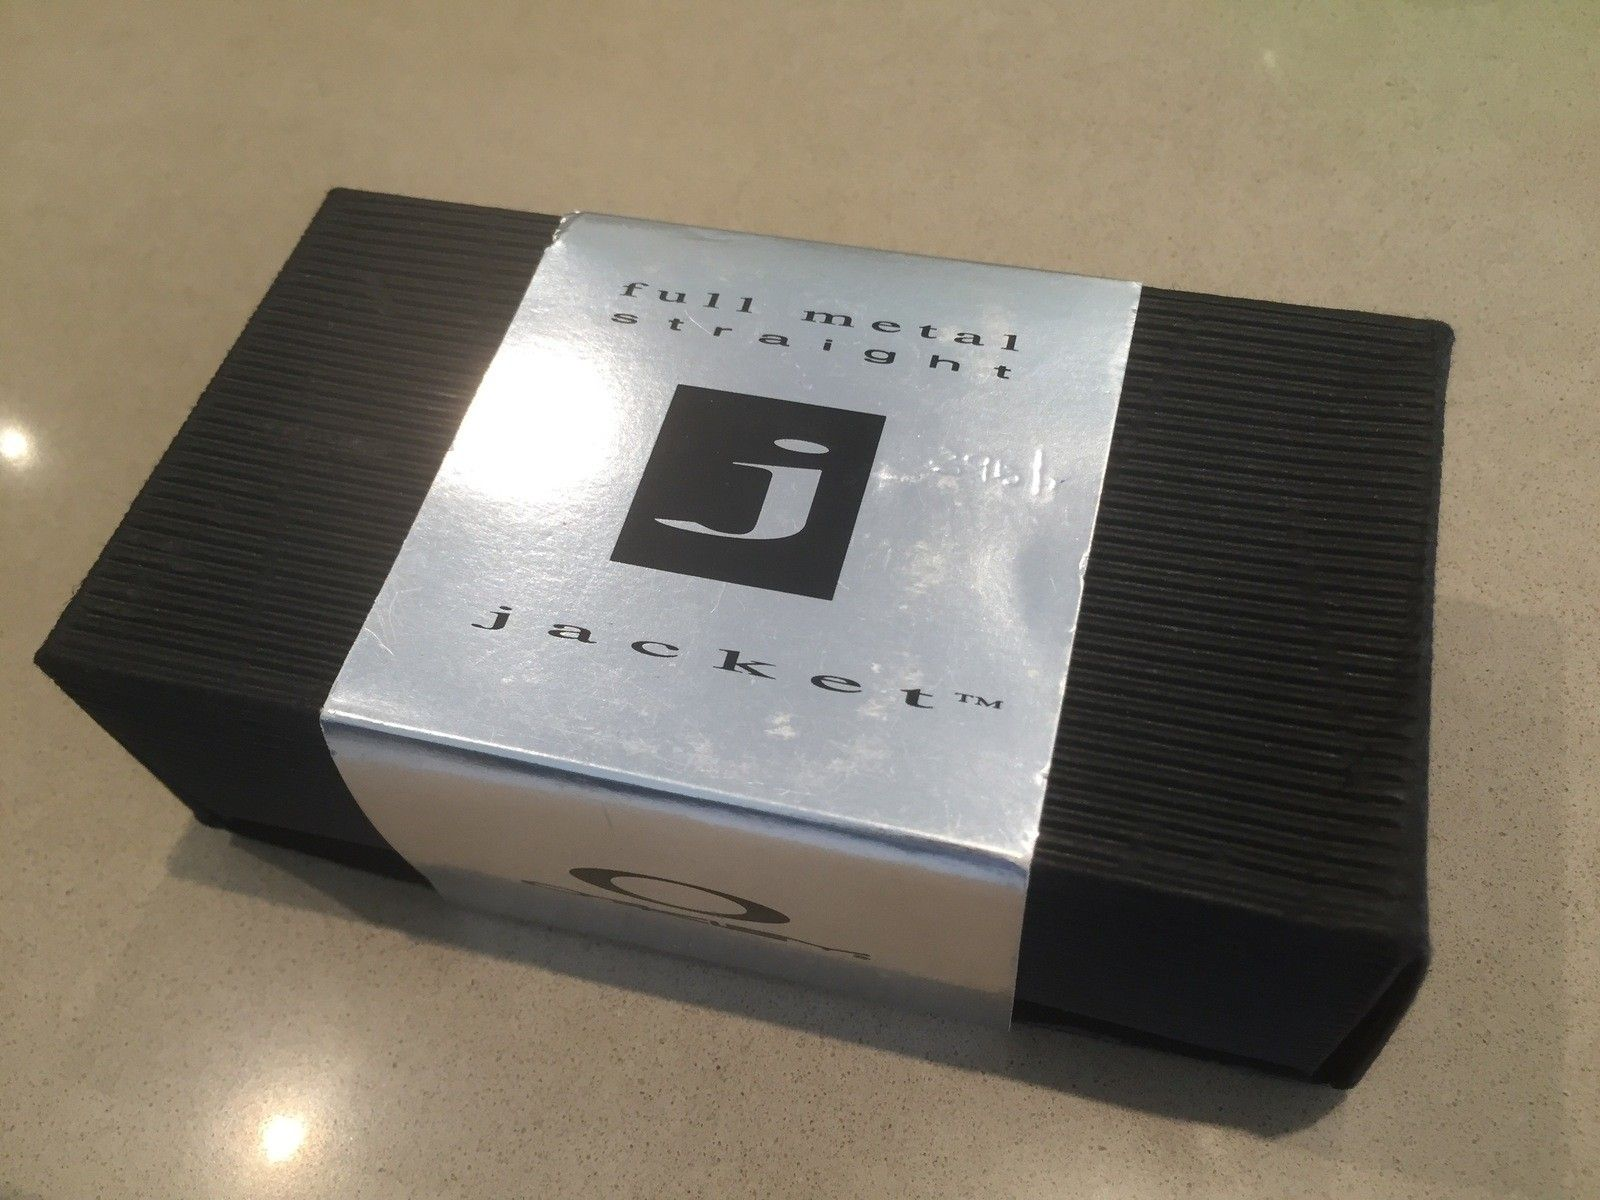 Anyone know which Oakley Sunglasses belong to this box? - IMG_4391.jpg